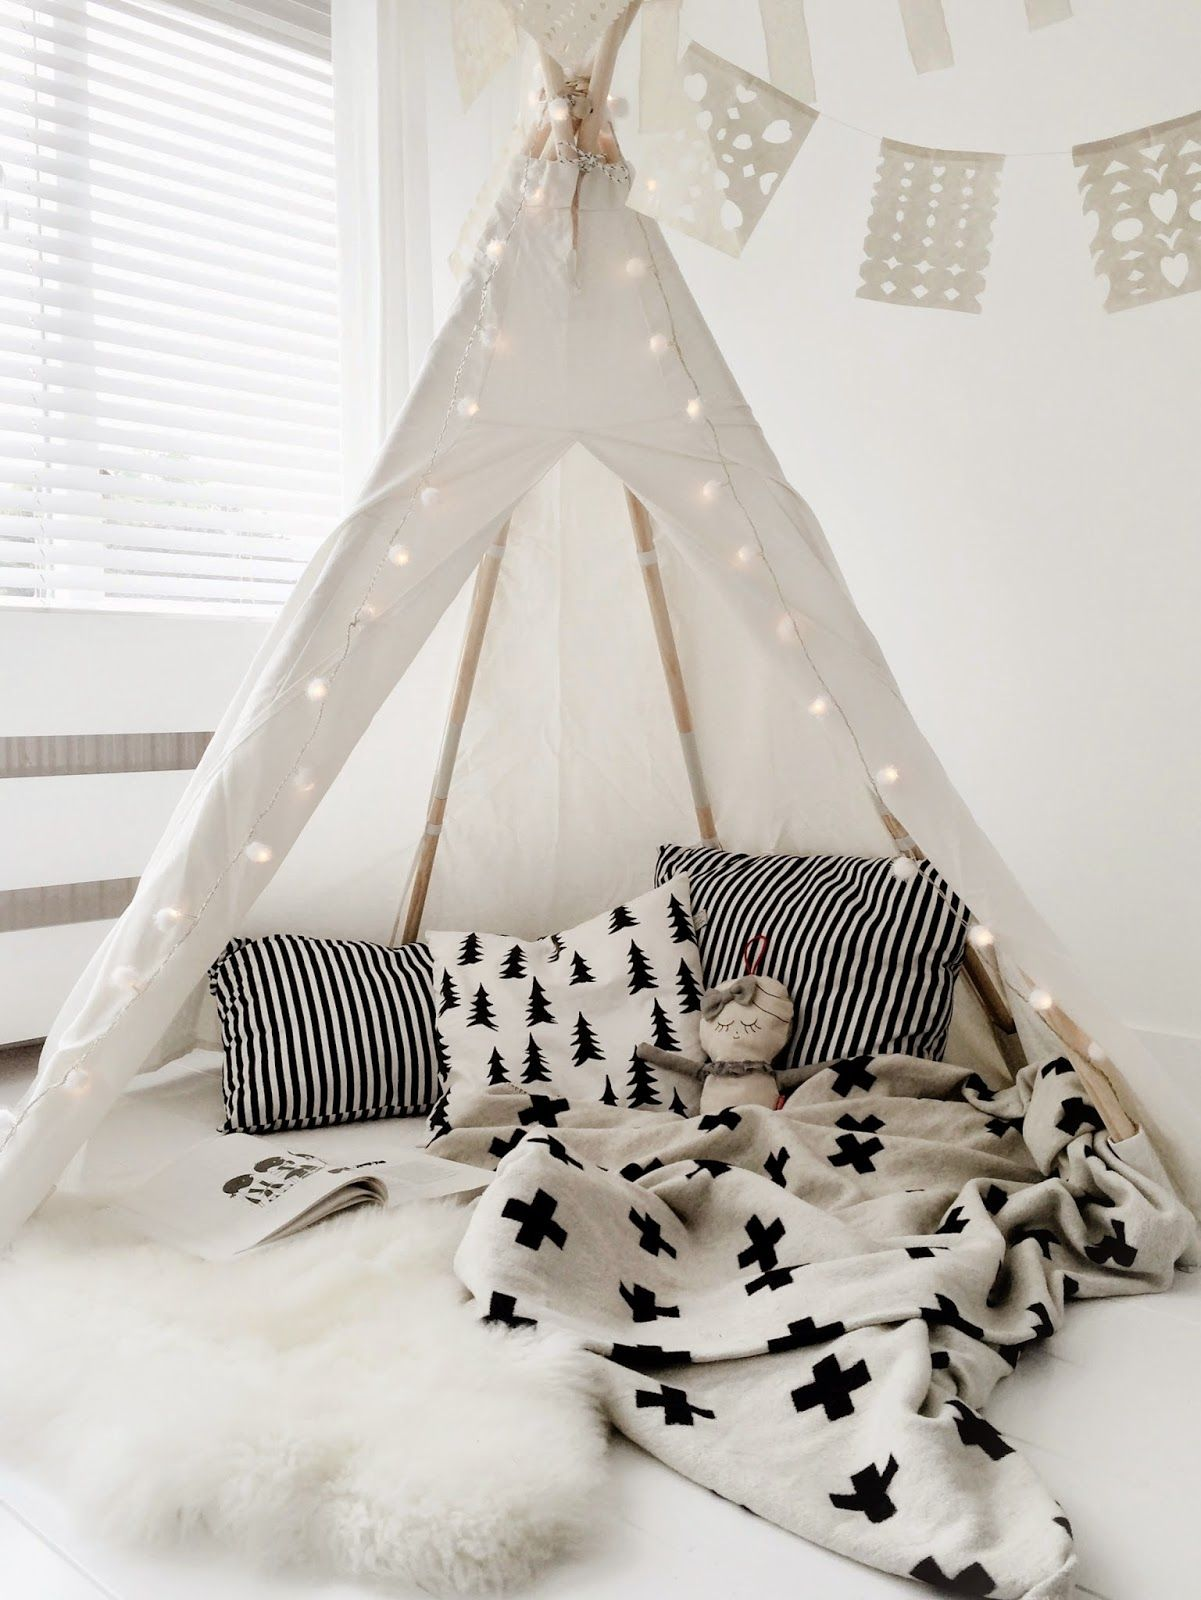 Proof that black & white doesn't have to look cold .... cool monochrome accessories on a white backdrop make this one very stylish teepee :: KOKO KIDS :: #teepee #black&whitechildrensrooms #monochromenursery